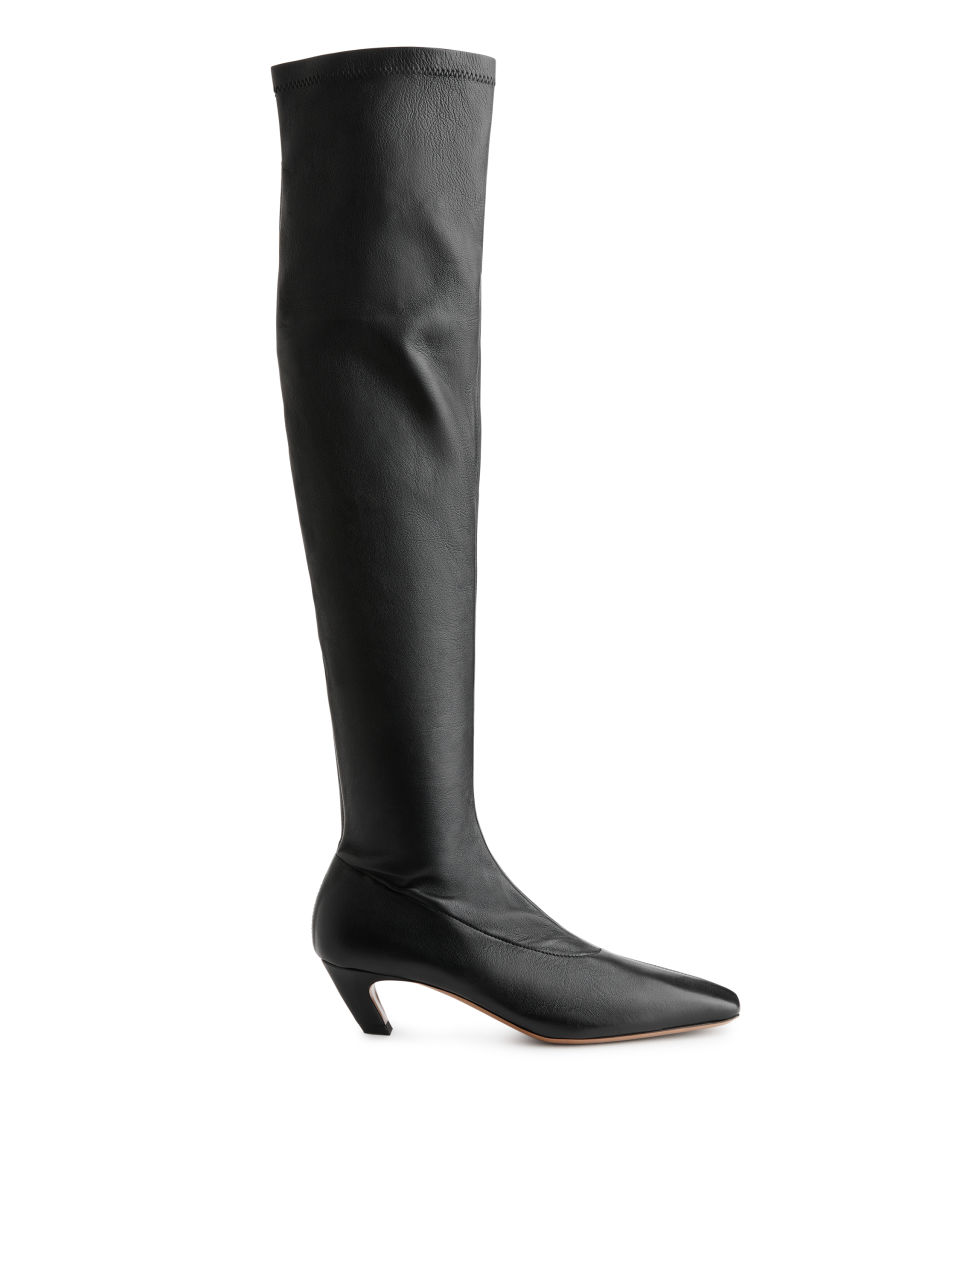 Over-Knee Stretch Leather Boots - Black